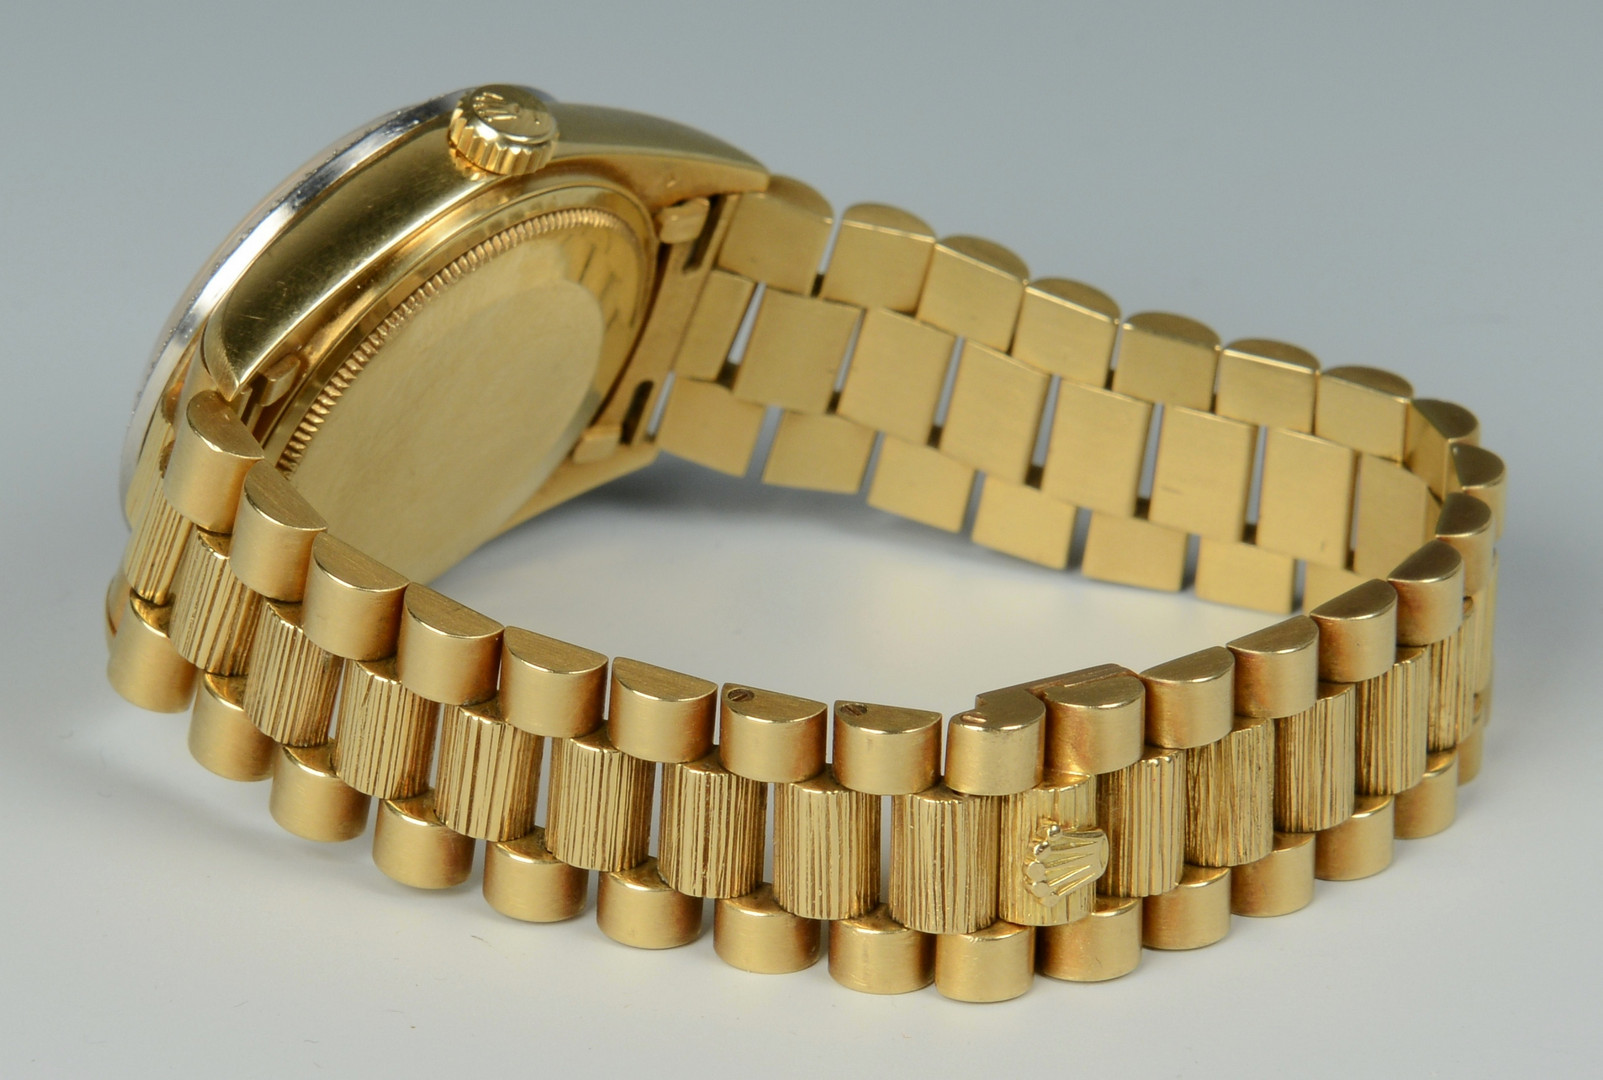 Lot 111: Men's 18K Rolex Oyster Perpetual Wristwatch